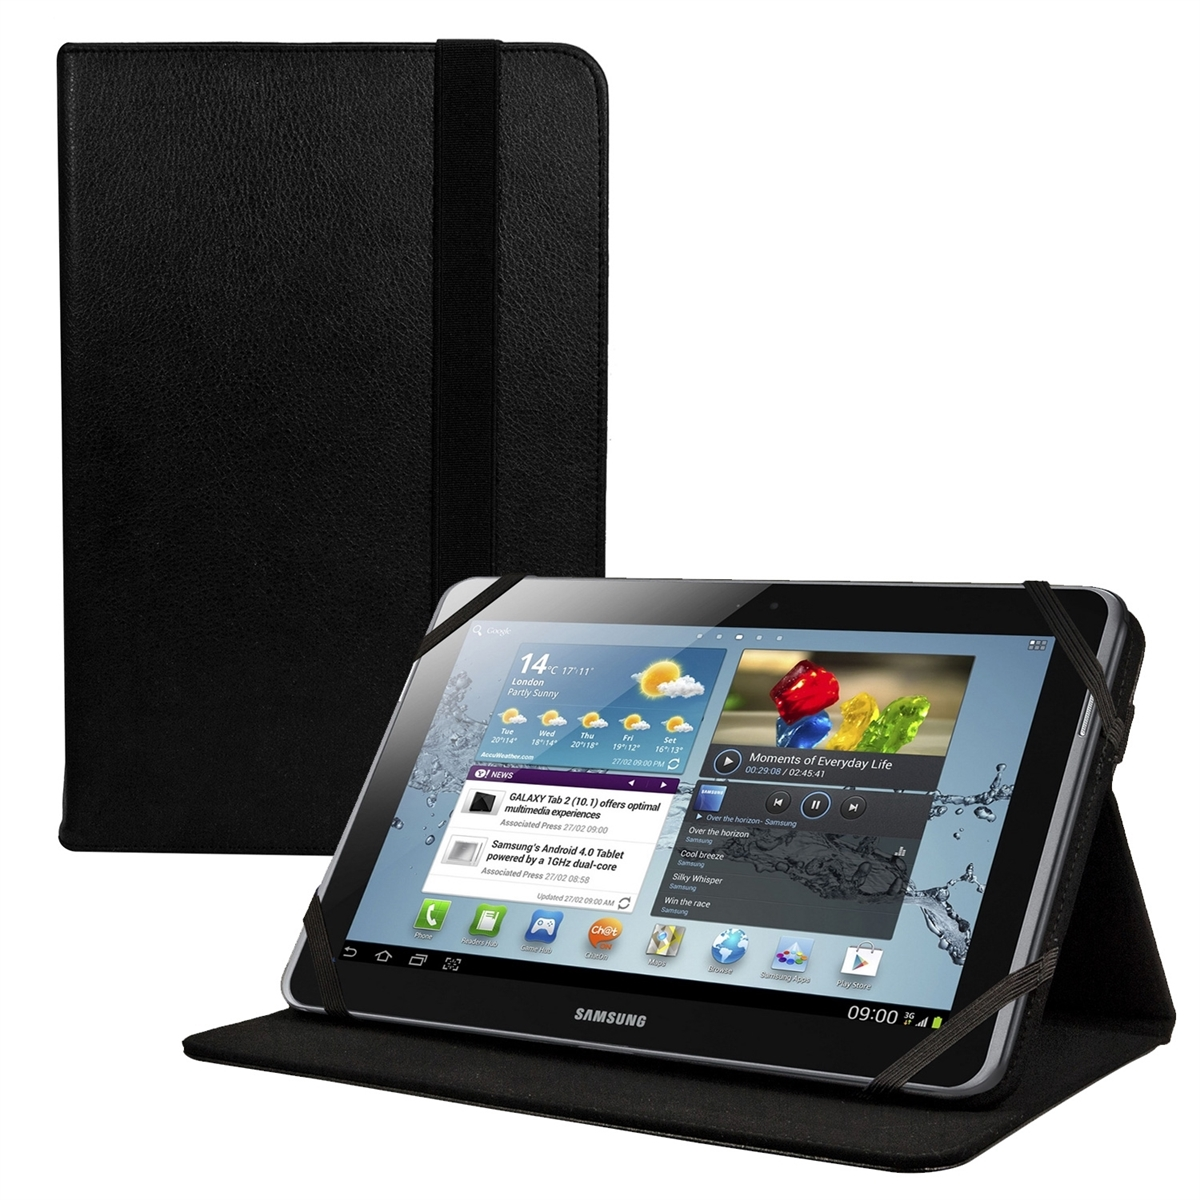 Housse de protection pour samsung galaxy tab 2 10 1 p5100 for Housse galaxy tab e